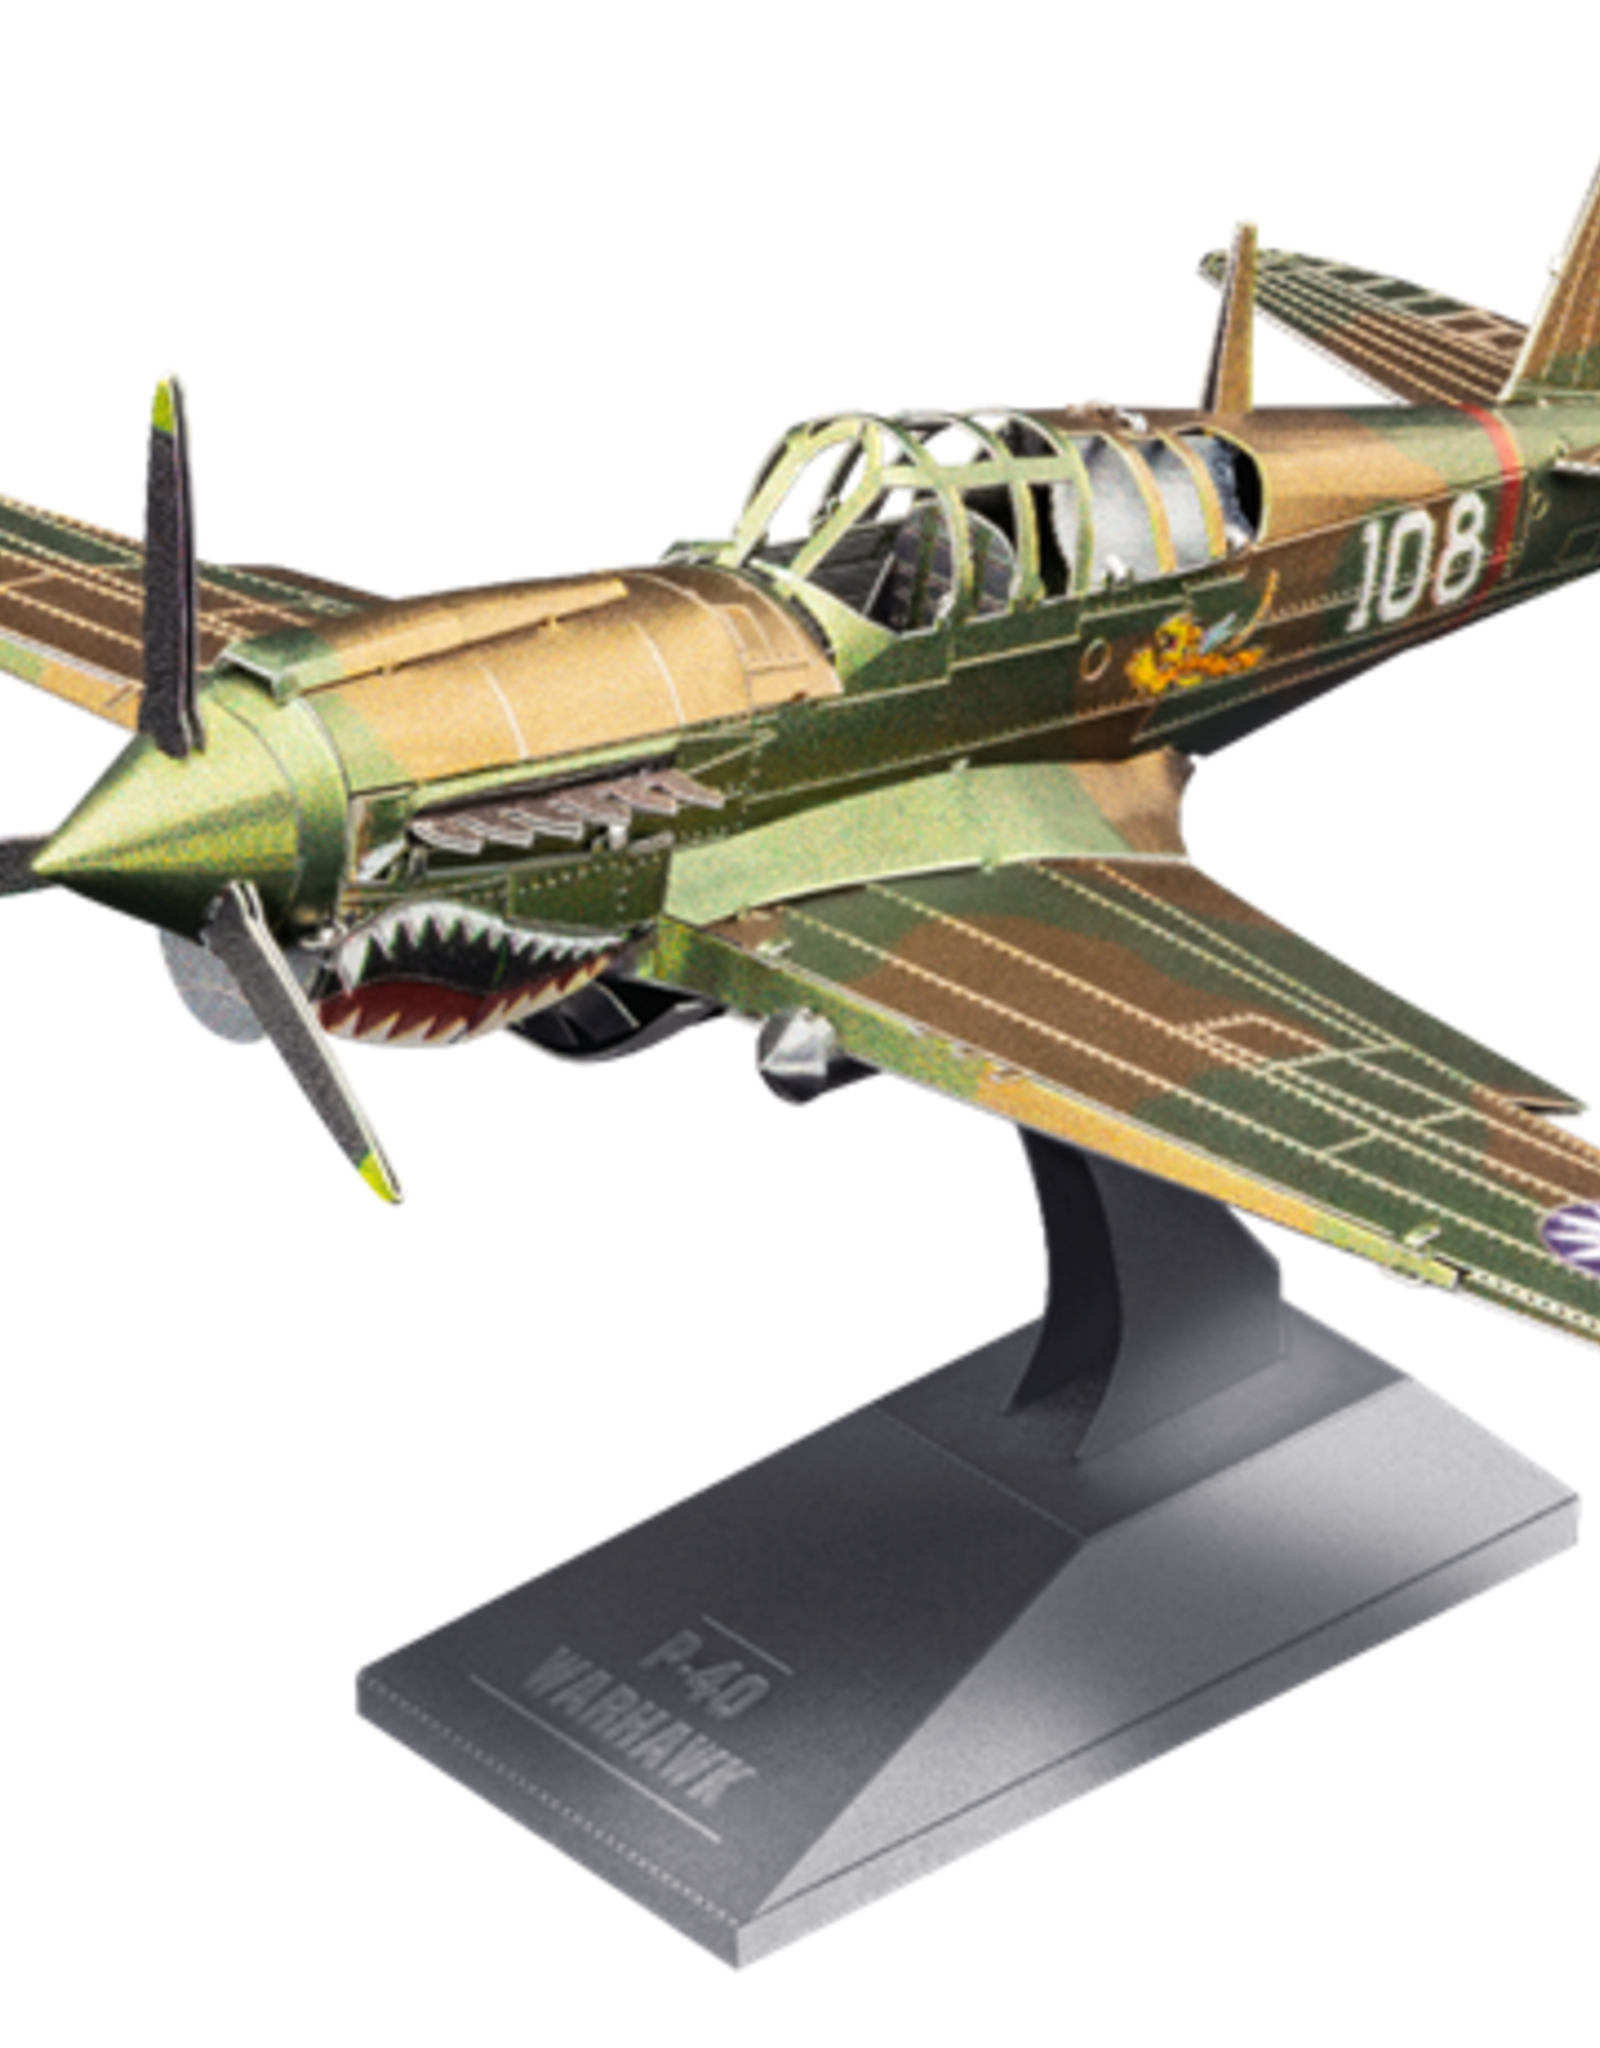 MetalEarth M.E. P-40 Warhawk